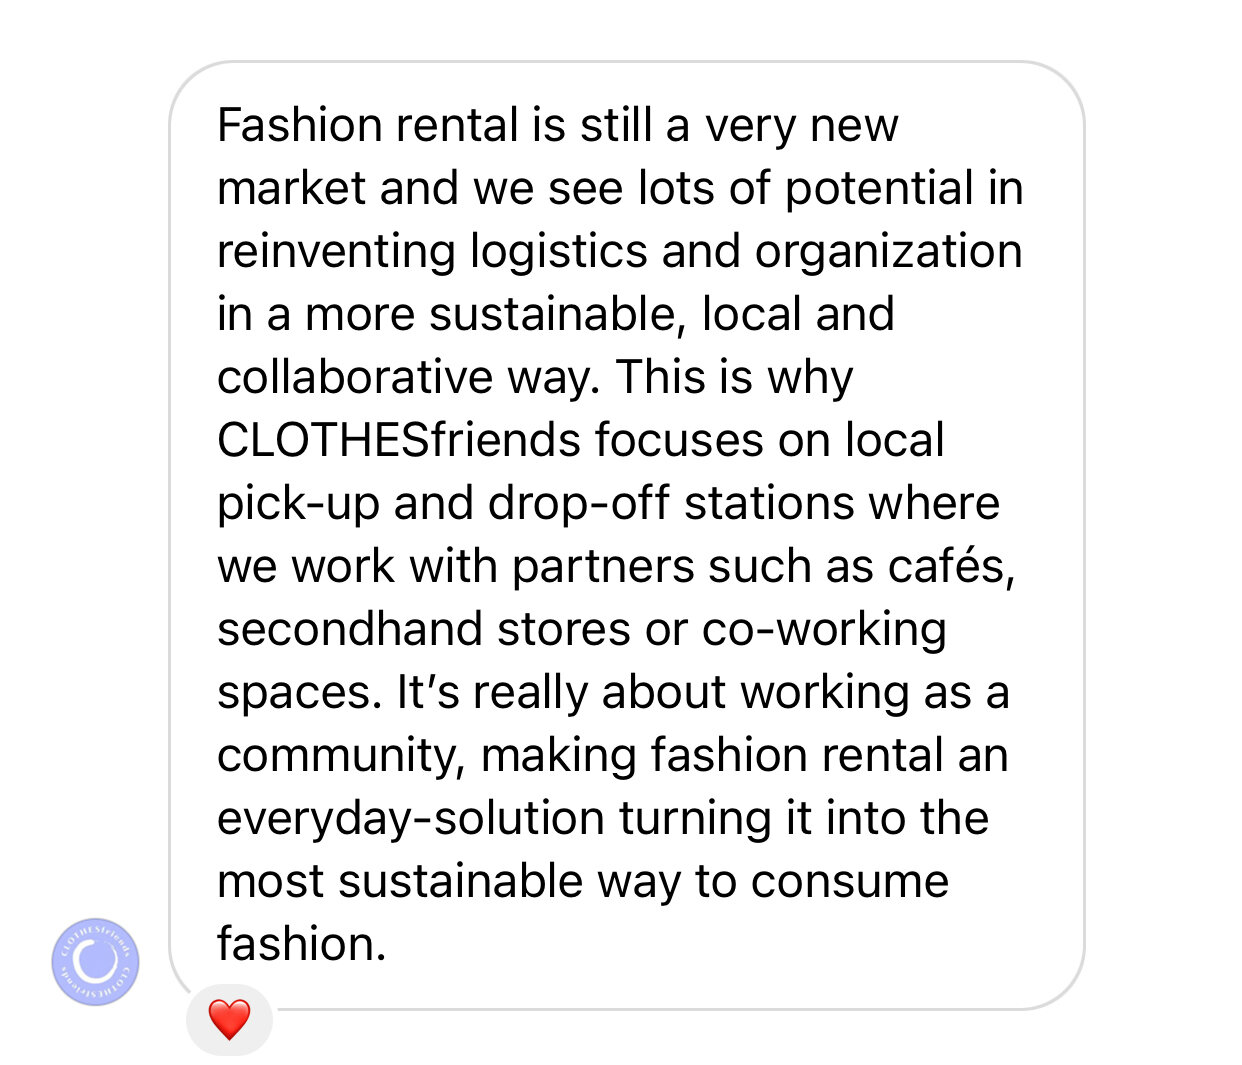 clothing-rental-sustainable-clothesfriends.jpg